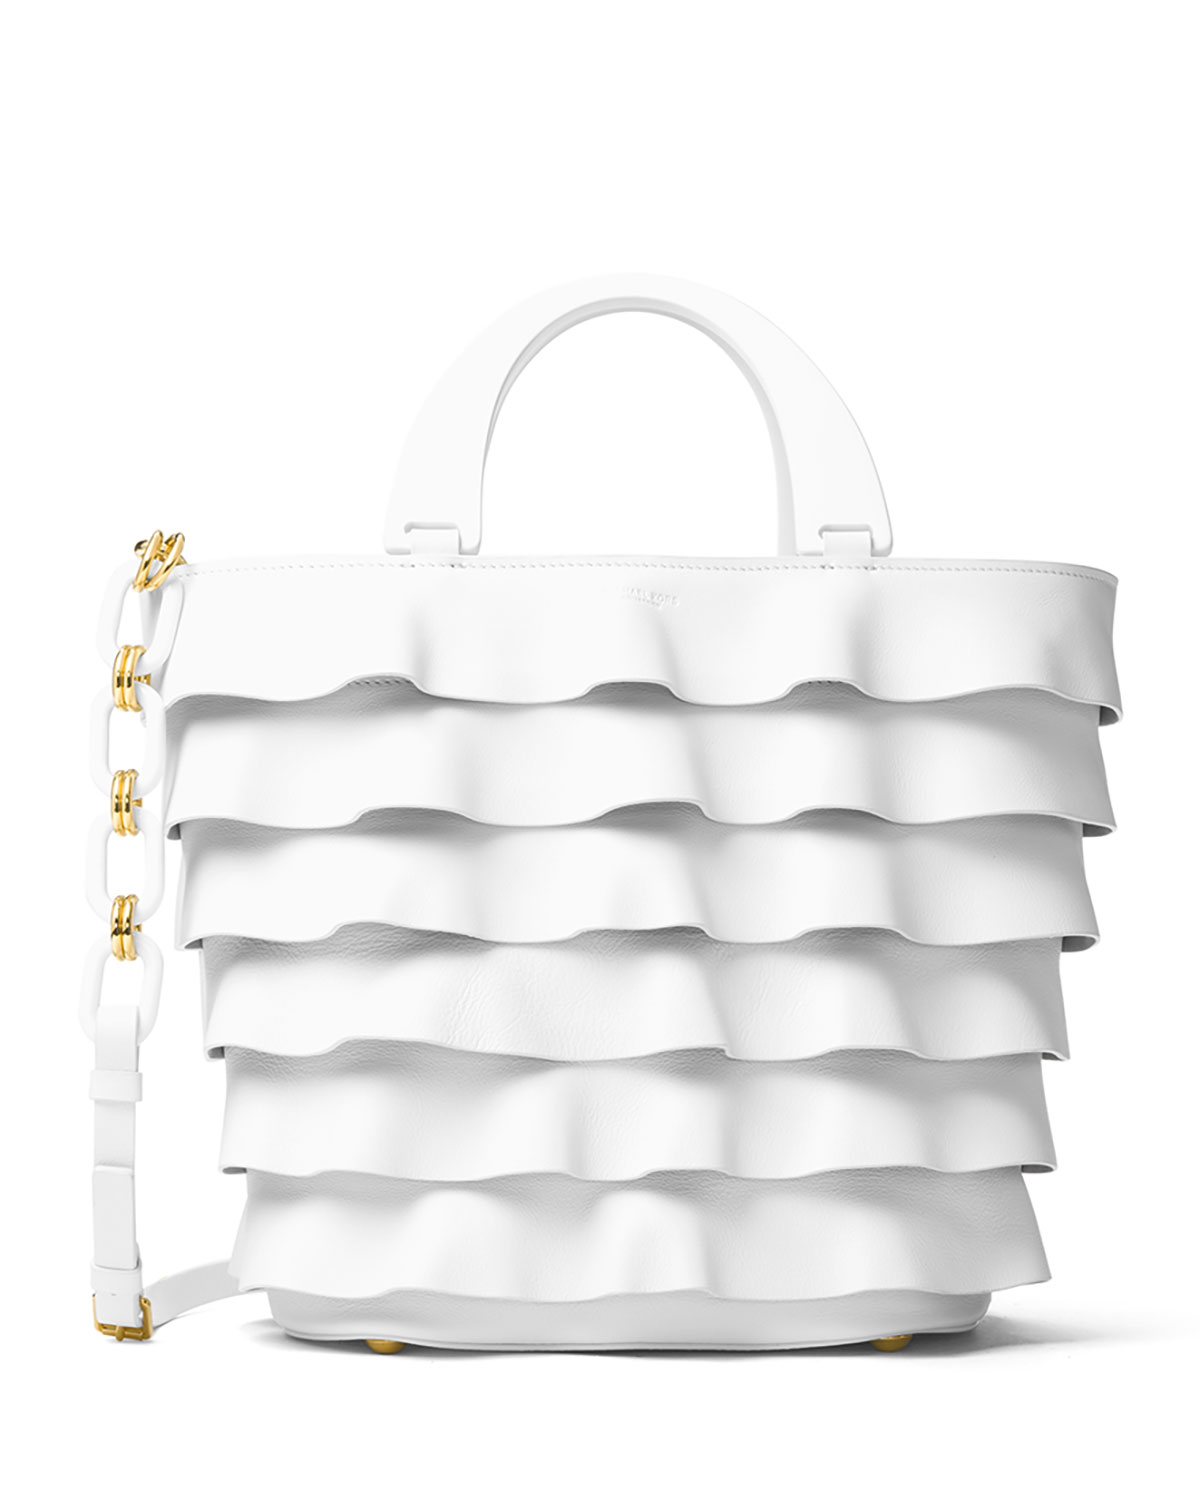 Stanwyck Ruffled Leather Tote Bag, White